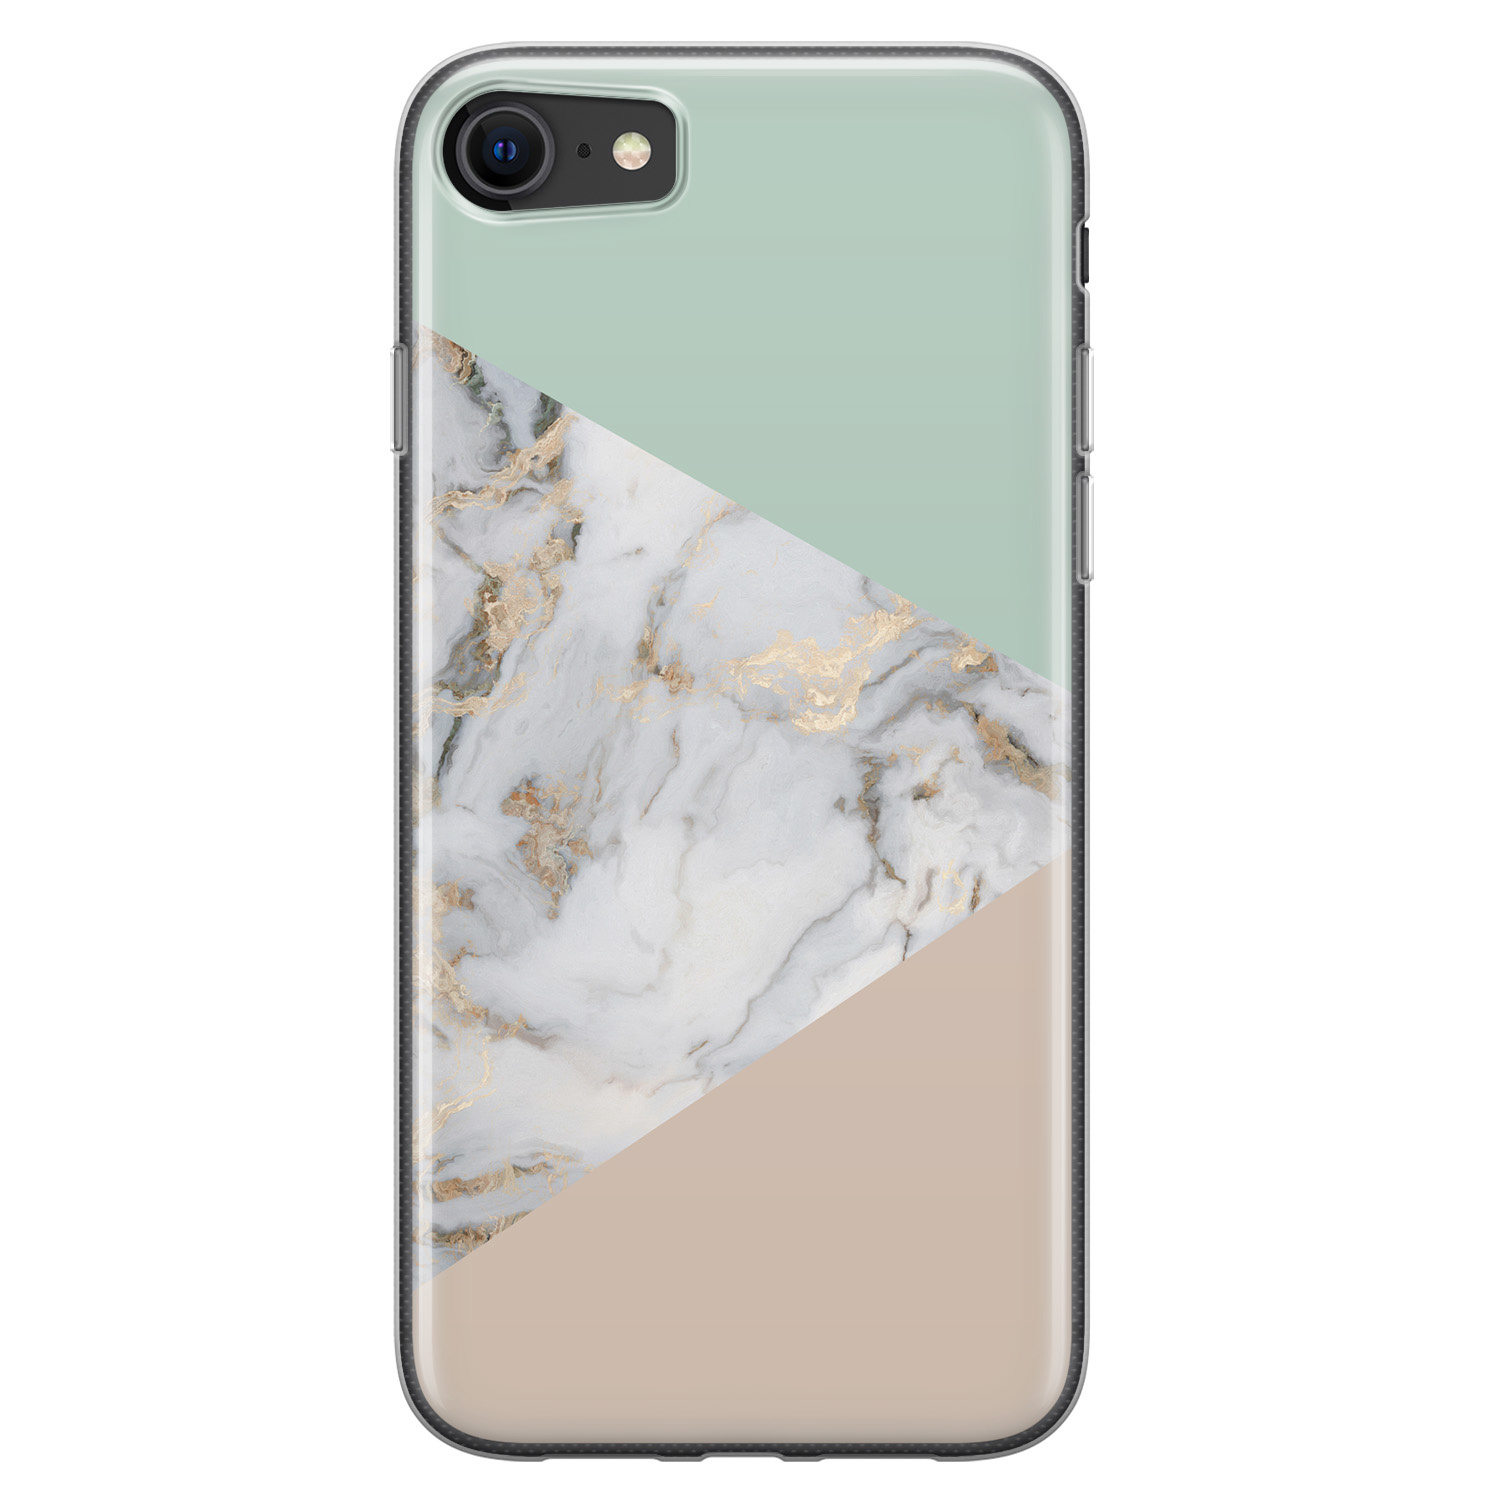 iPhone SE 2020 siliconen hoesje - Marmer pastel mix